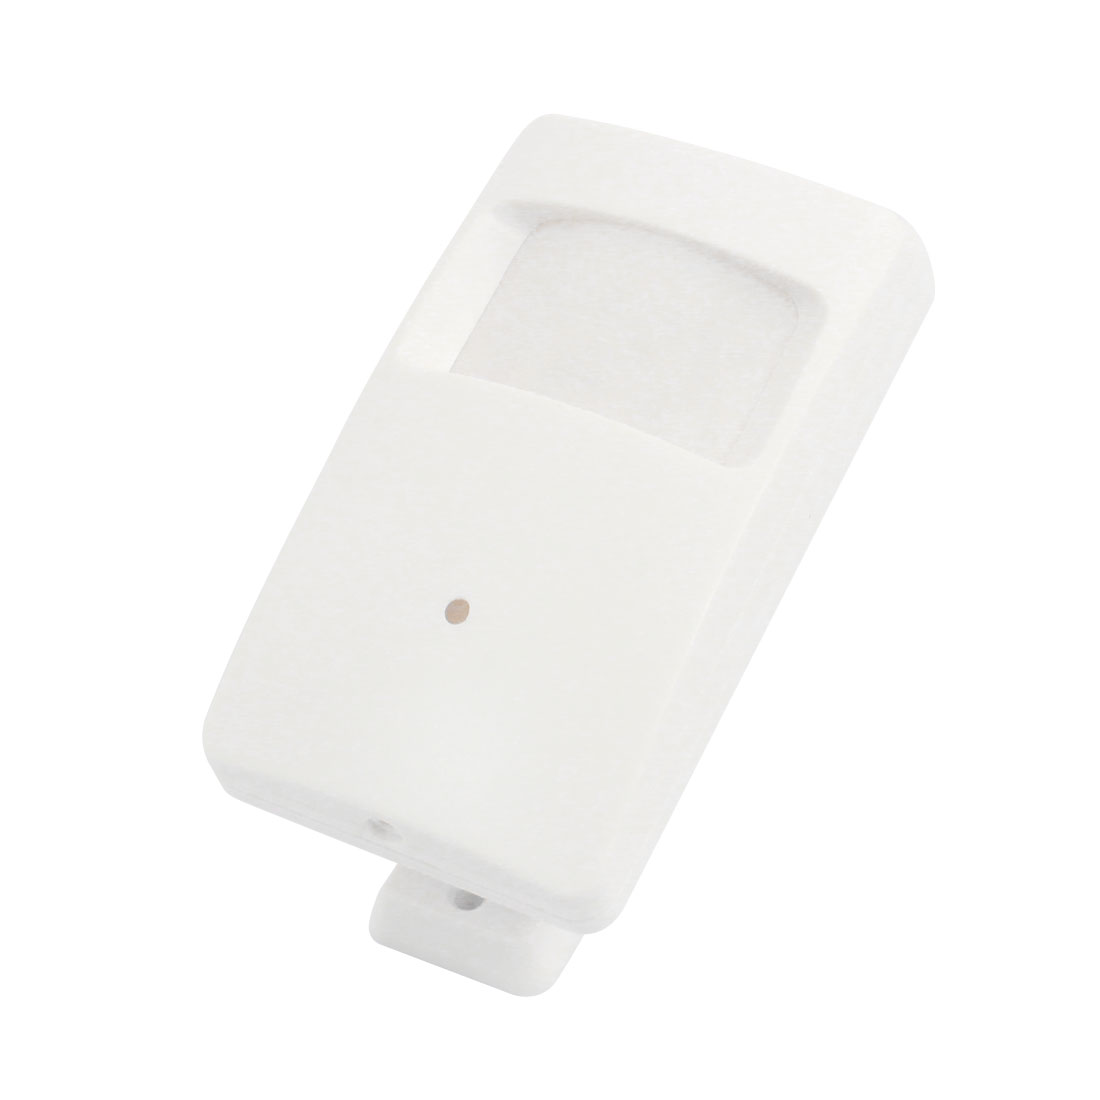 White Plastic PIR CCTV Camera Housing Case 10.4cm x 6cm x 3.3cm